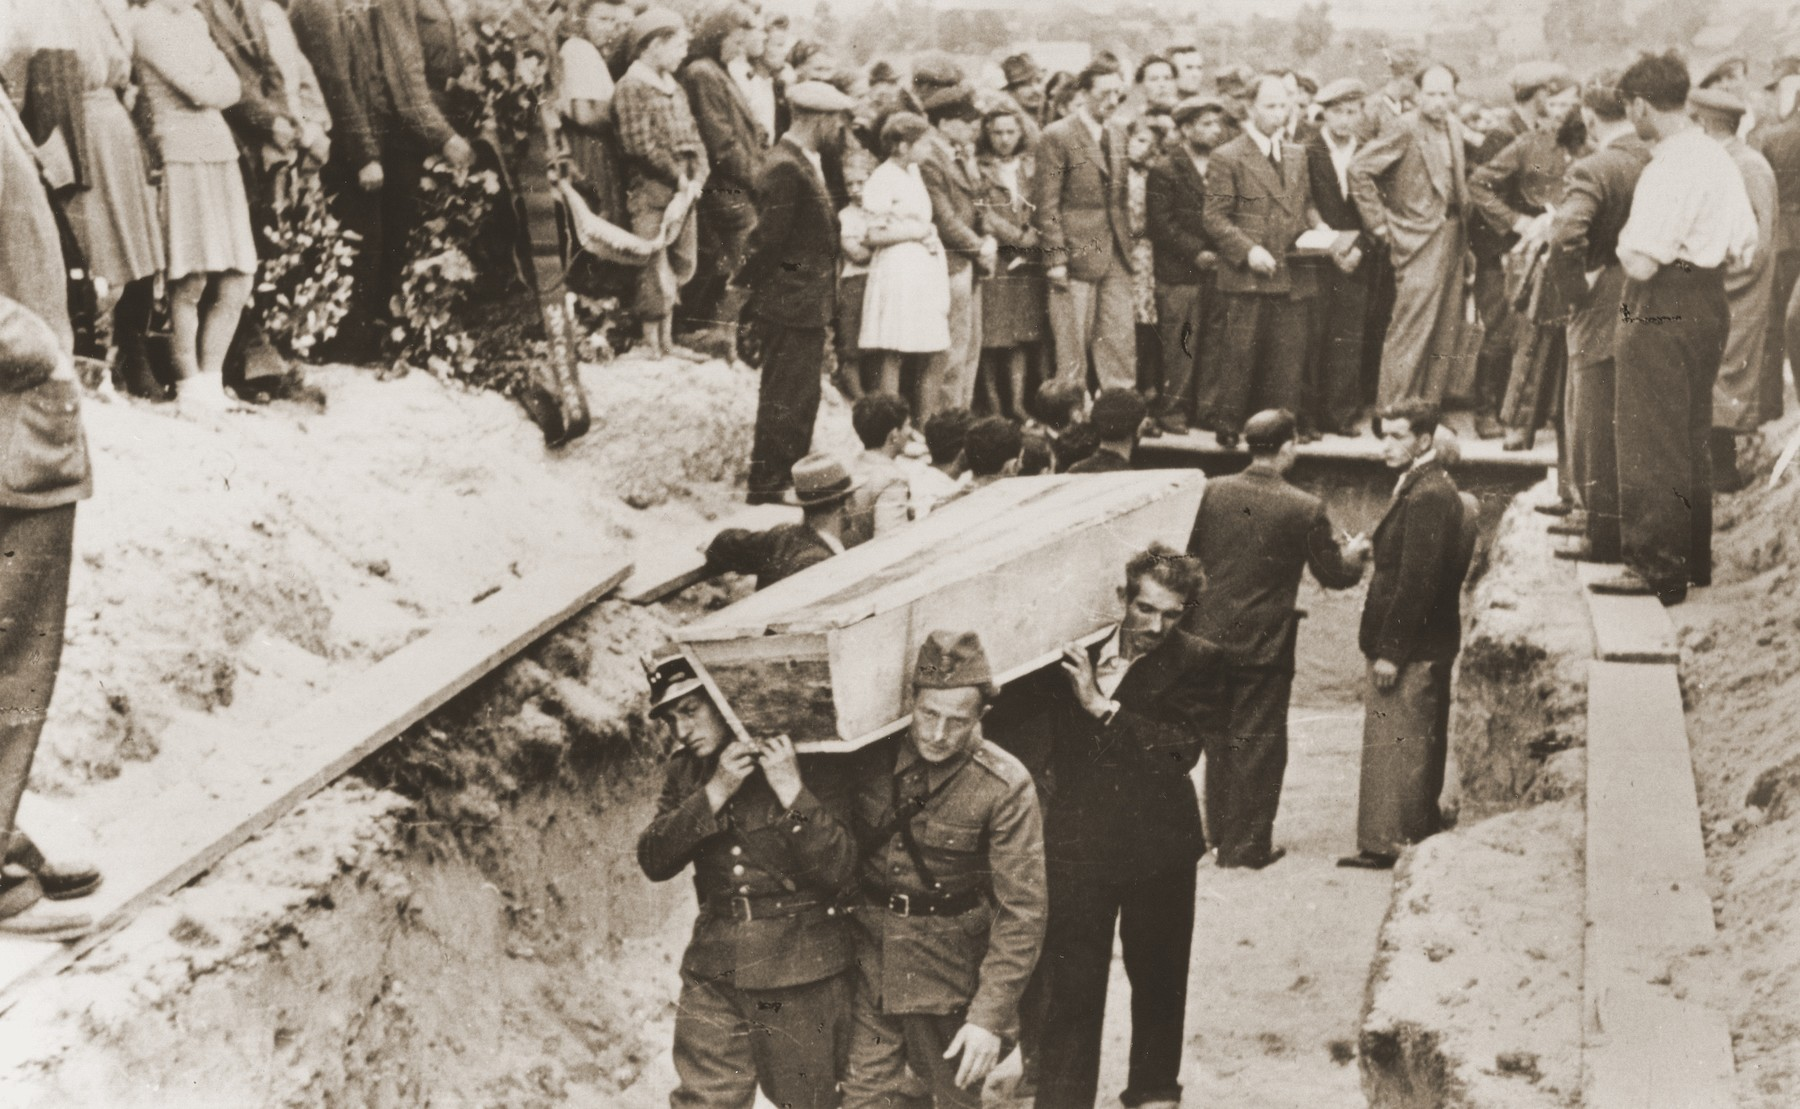 Pallbearers, some of whom are Polish soldiers, place the coffins of the victims of the Kielce pogrom in a mass grave at the Jewish cemetery.